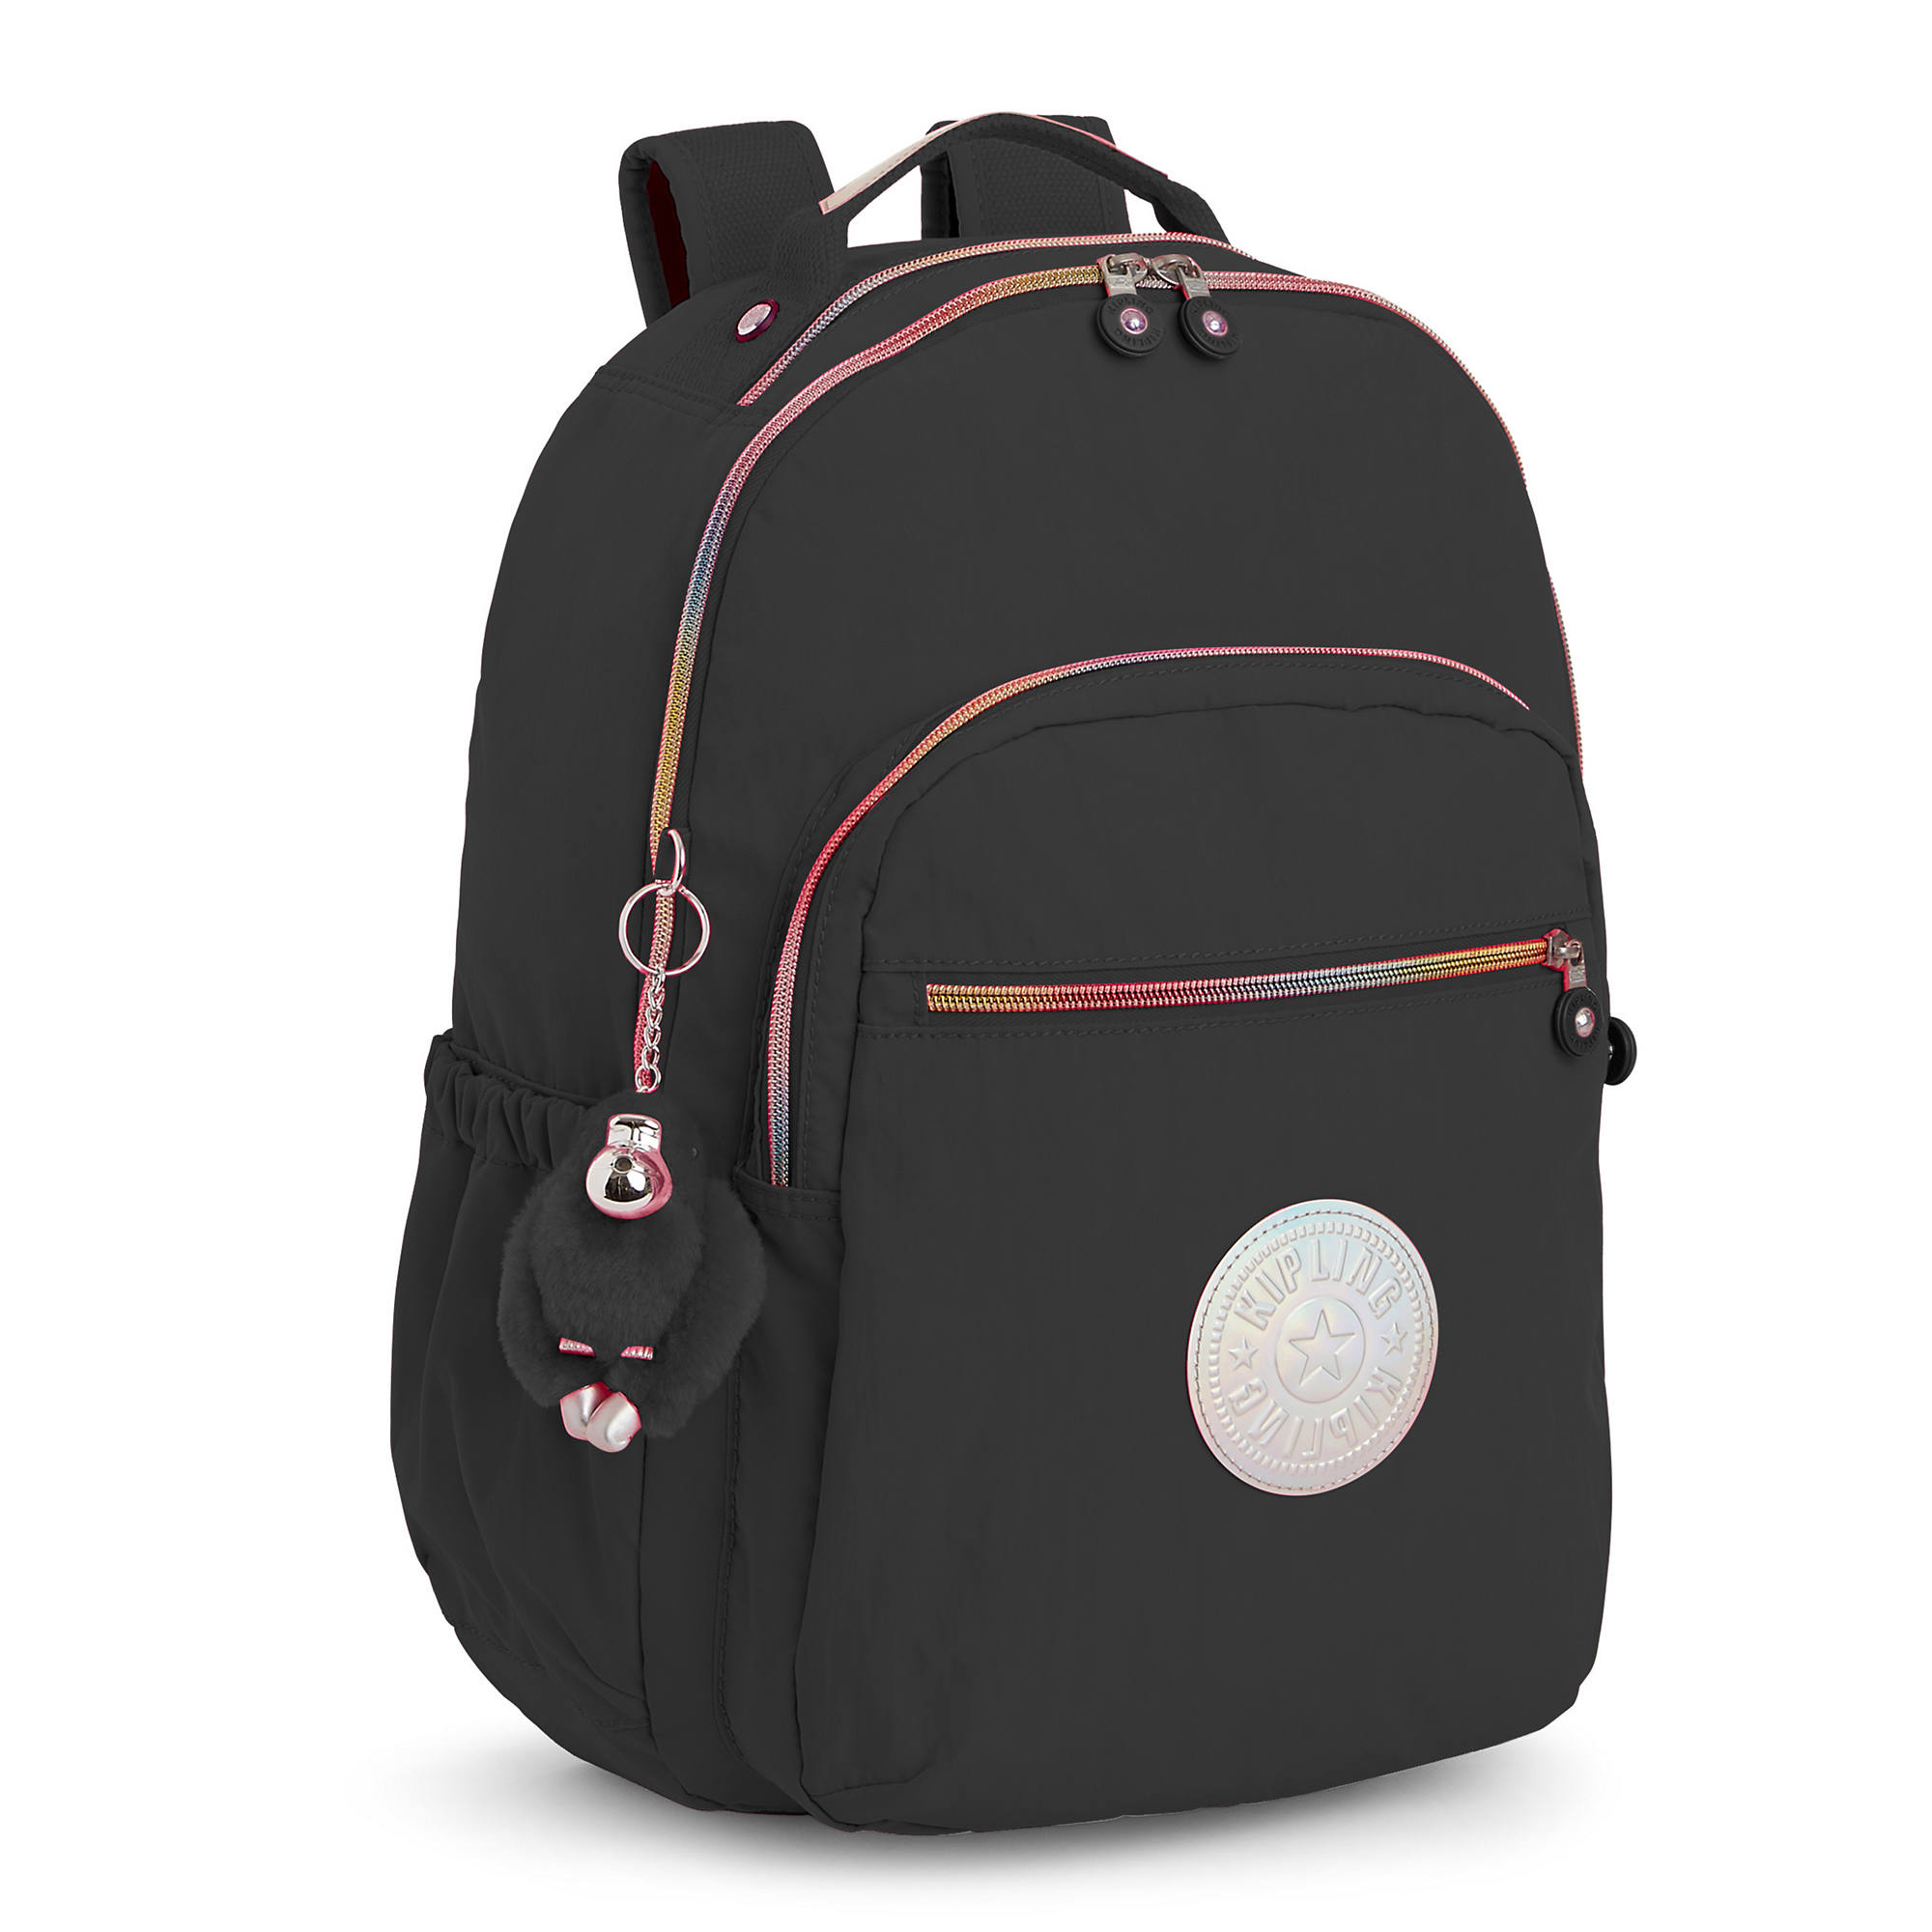 04c5286f8ae0 The Blue Pink Multicolour Backpack - snapdeal.com. Buy The Blue Pink  Multicolour Backpack online at best price ...